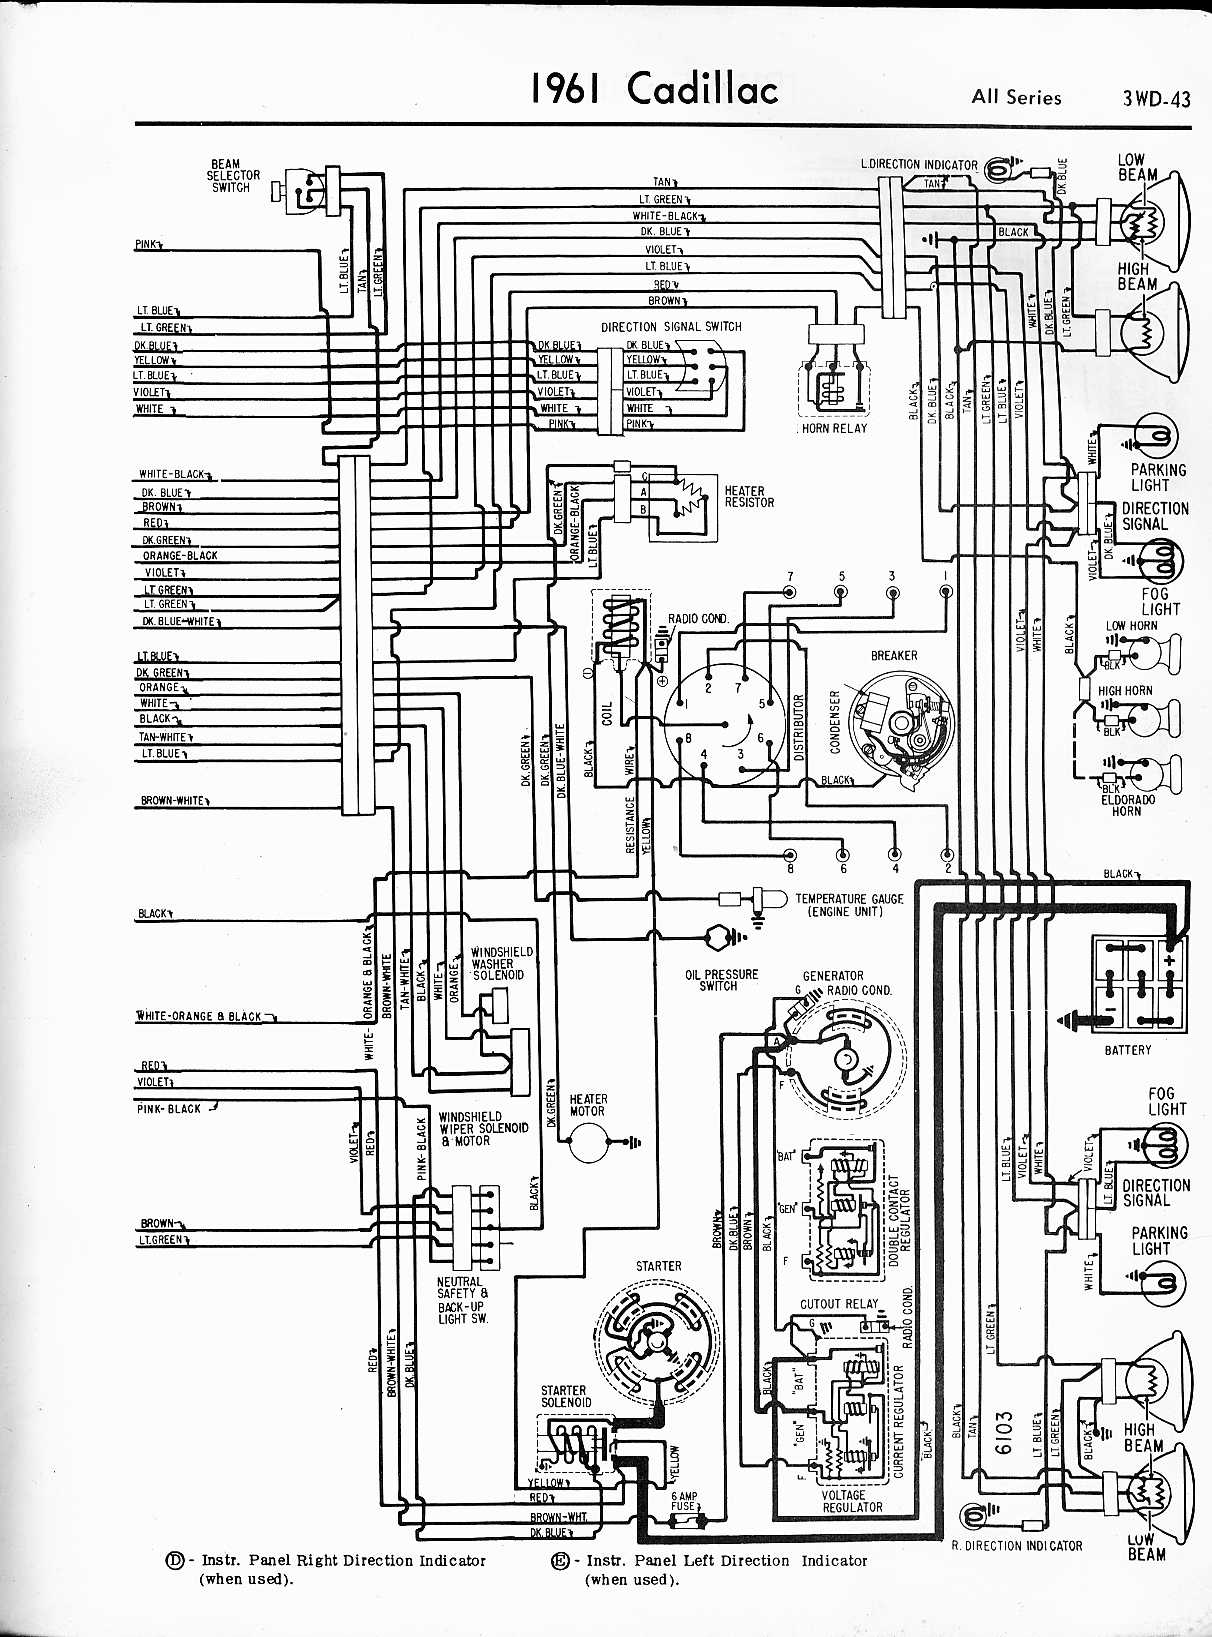 also 182355339224 1 in addition as well paul bremer airfilter 2 also  78vacwatc also as well. 1964 Ford Thunderbird Vacuum Diagram Ac